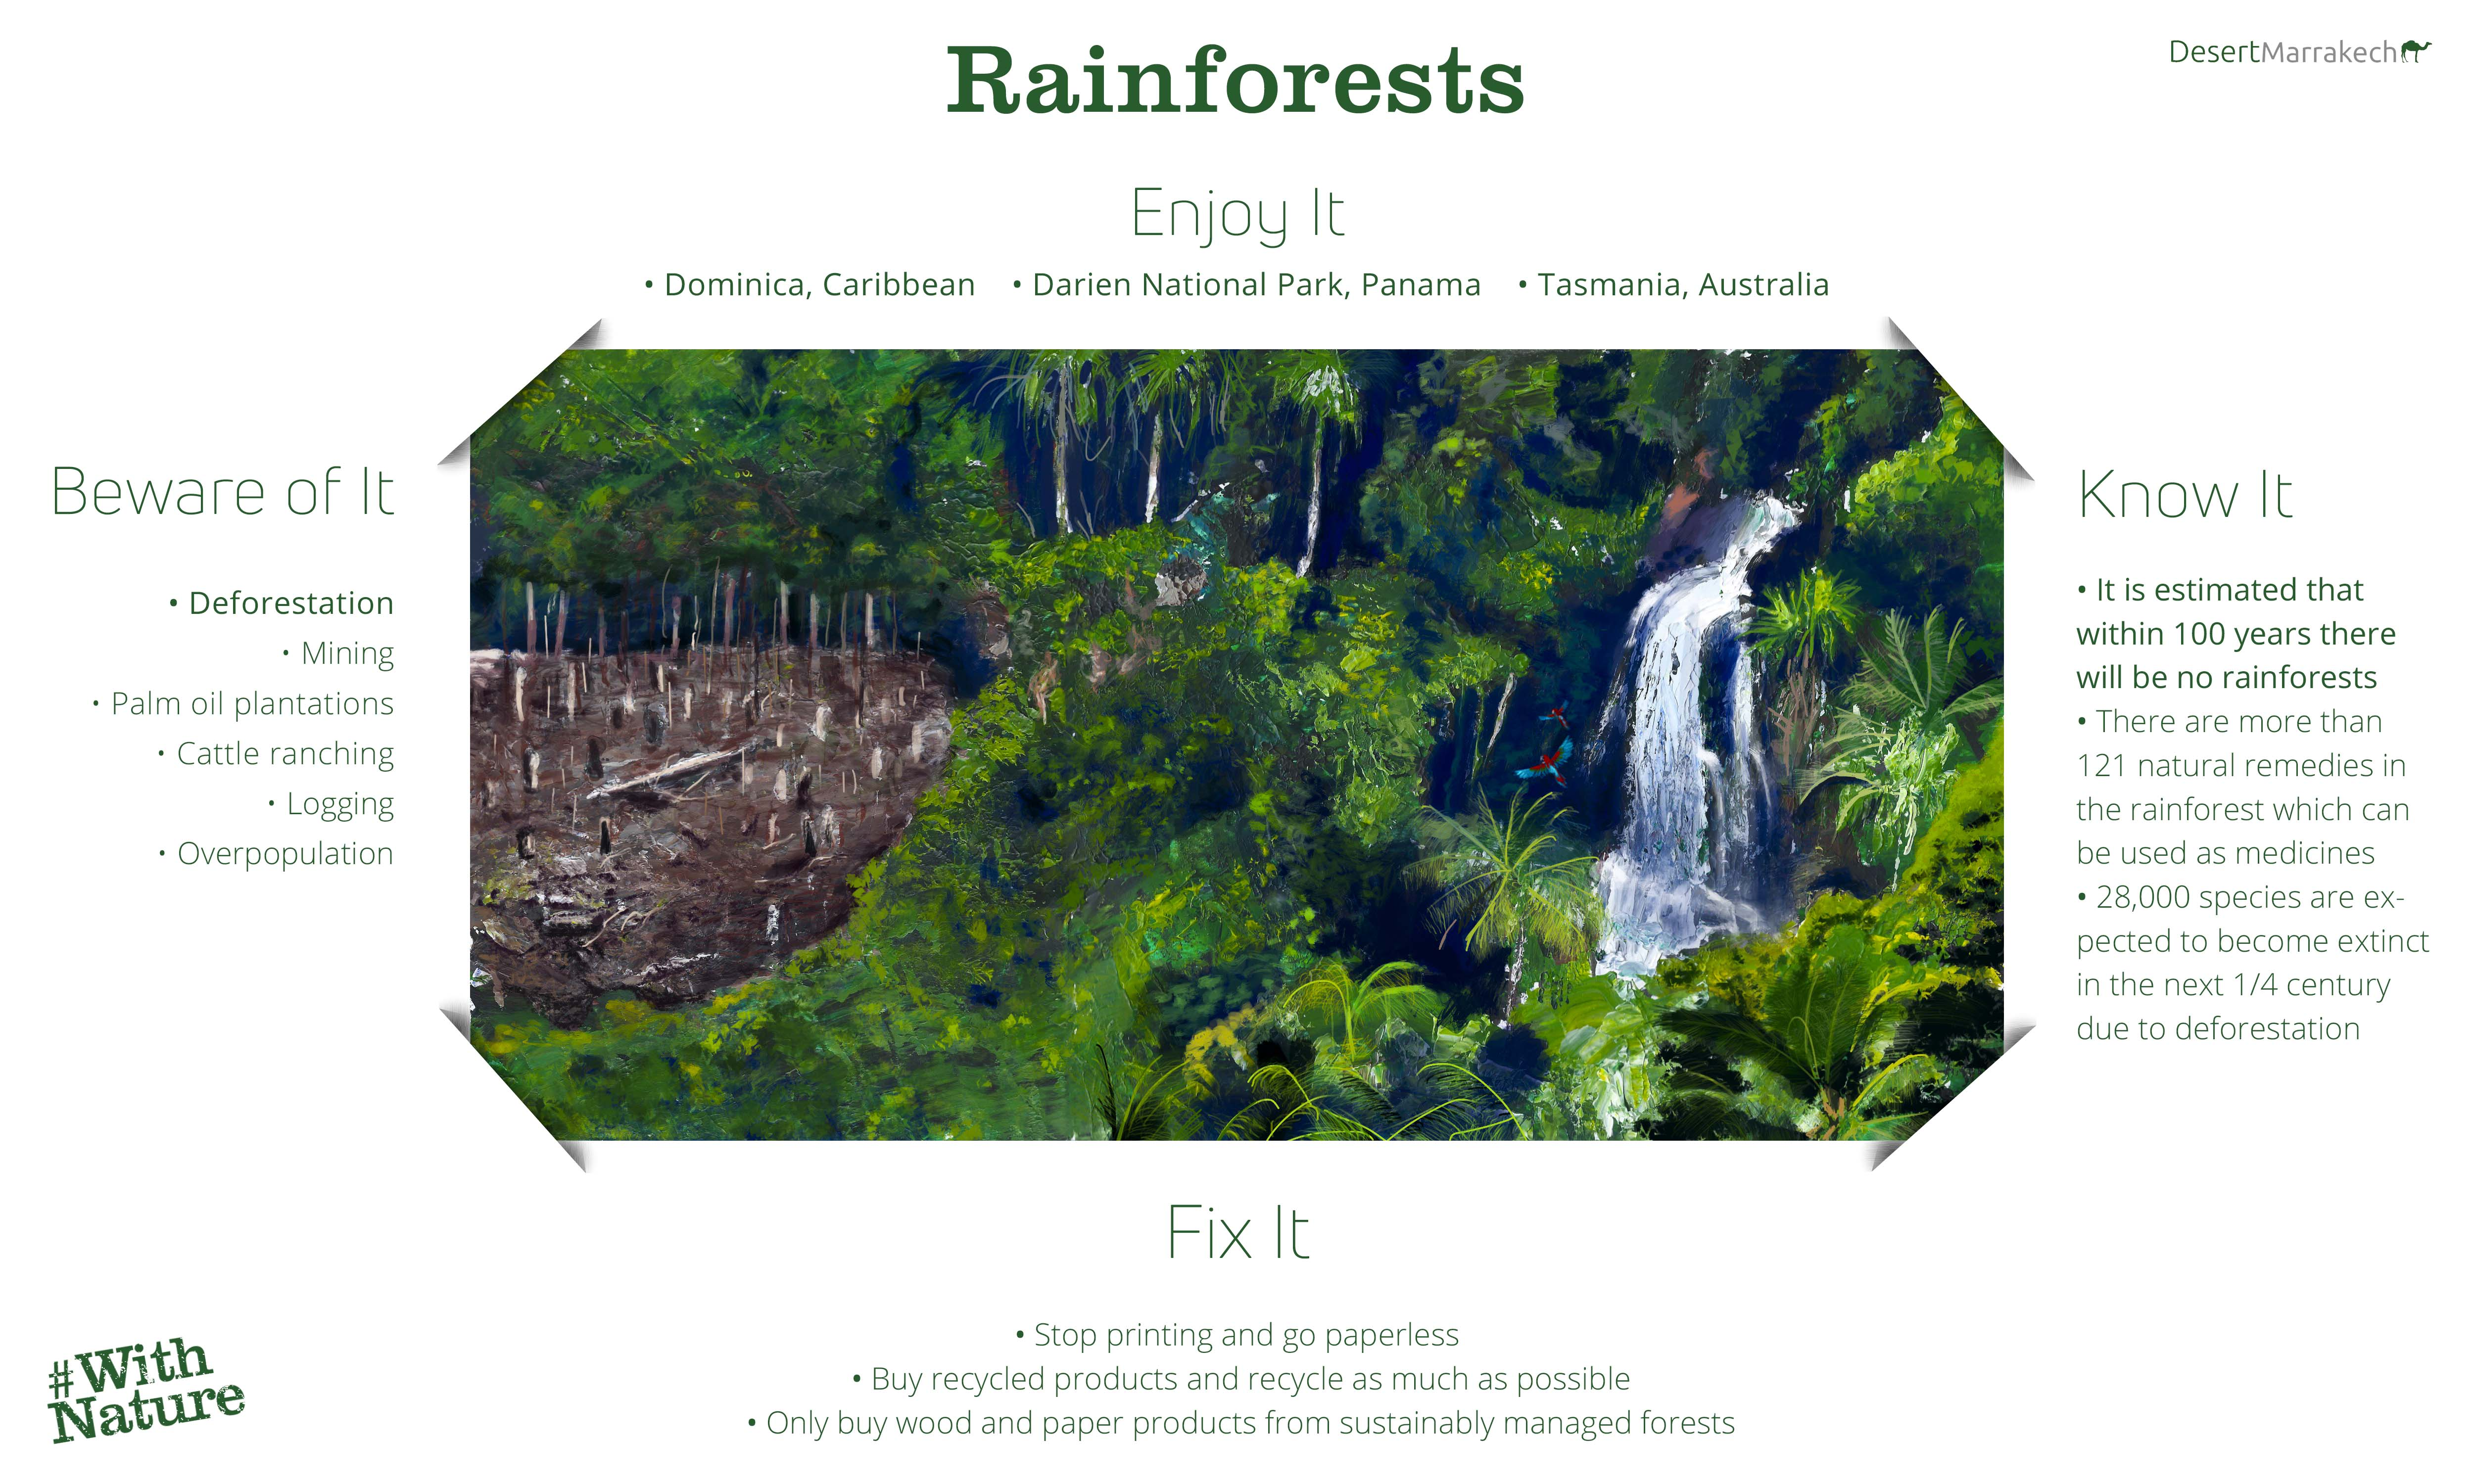 World Environment Day Rainforests Infographic